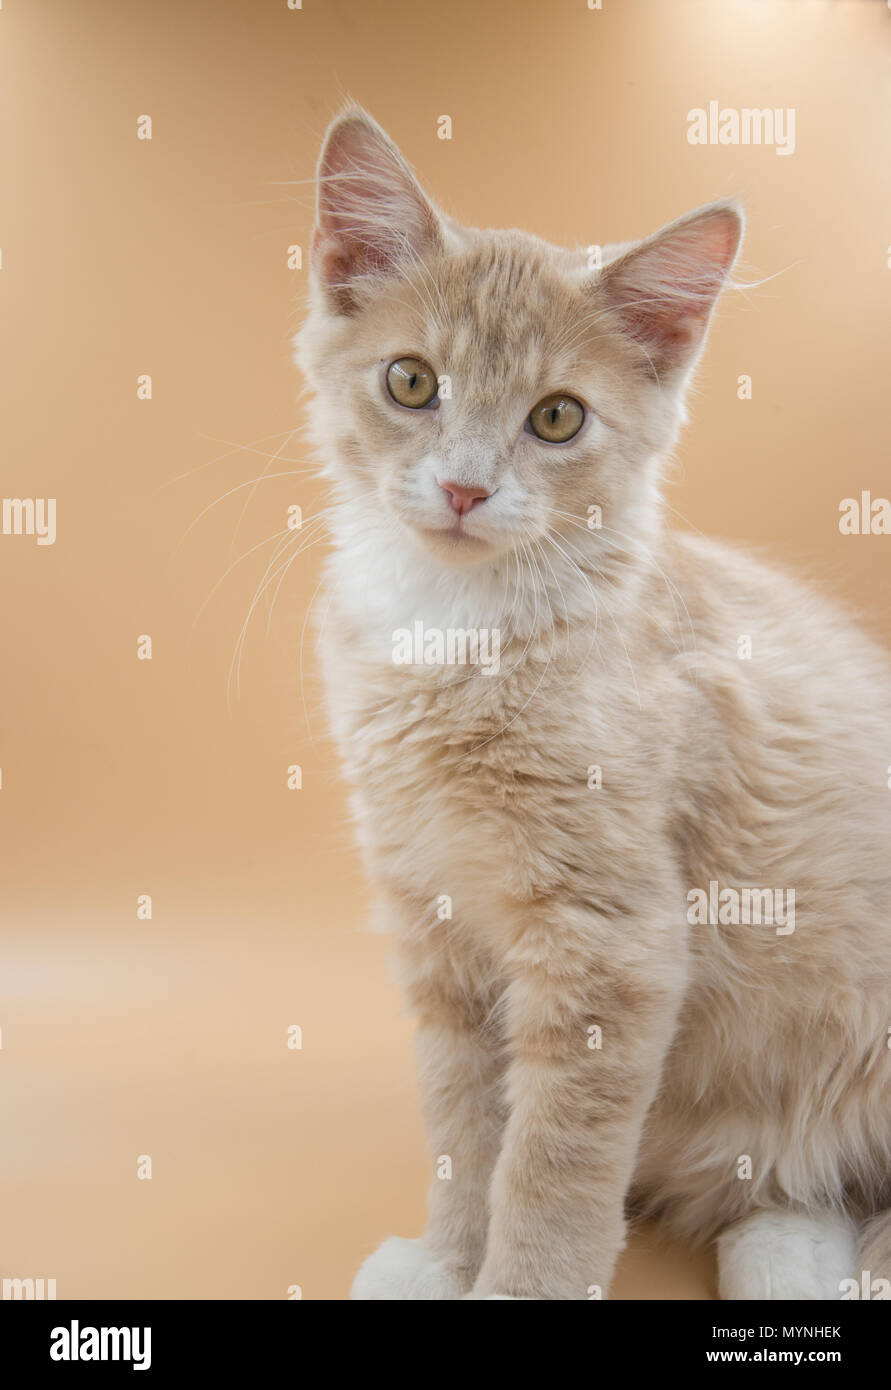 13 week old male  sandy orange kitten posing for pictures in a lightbox. - Stock Image